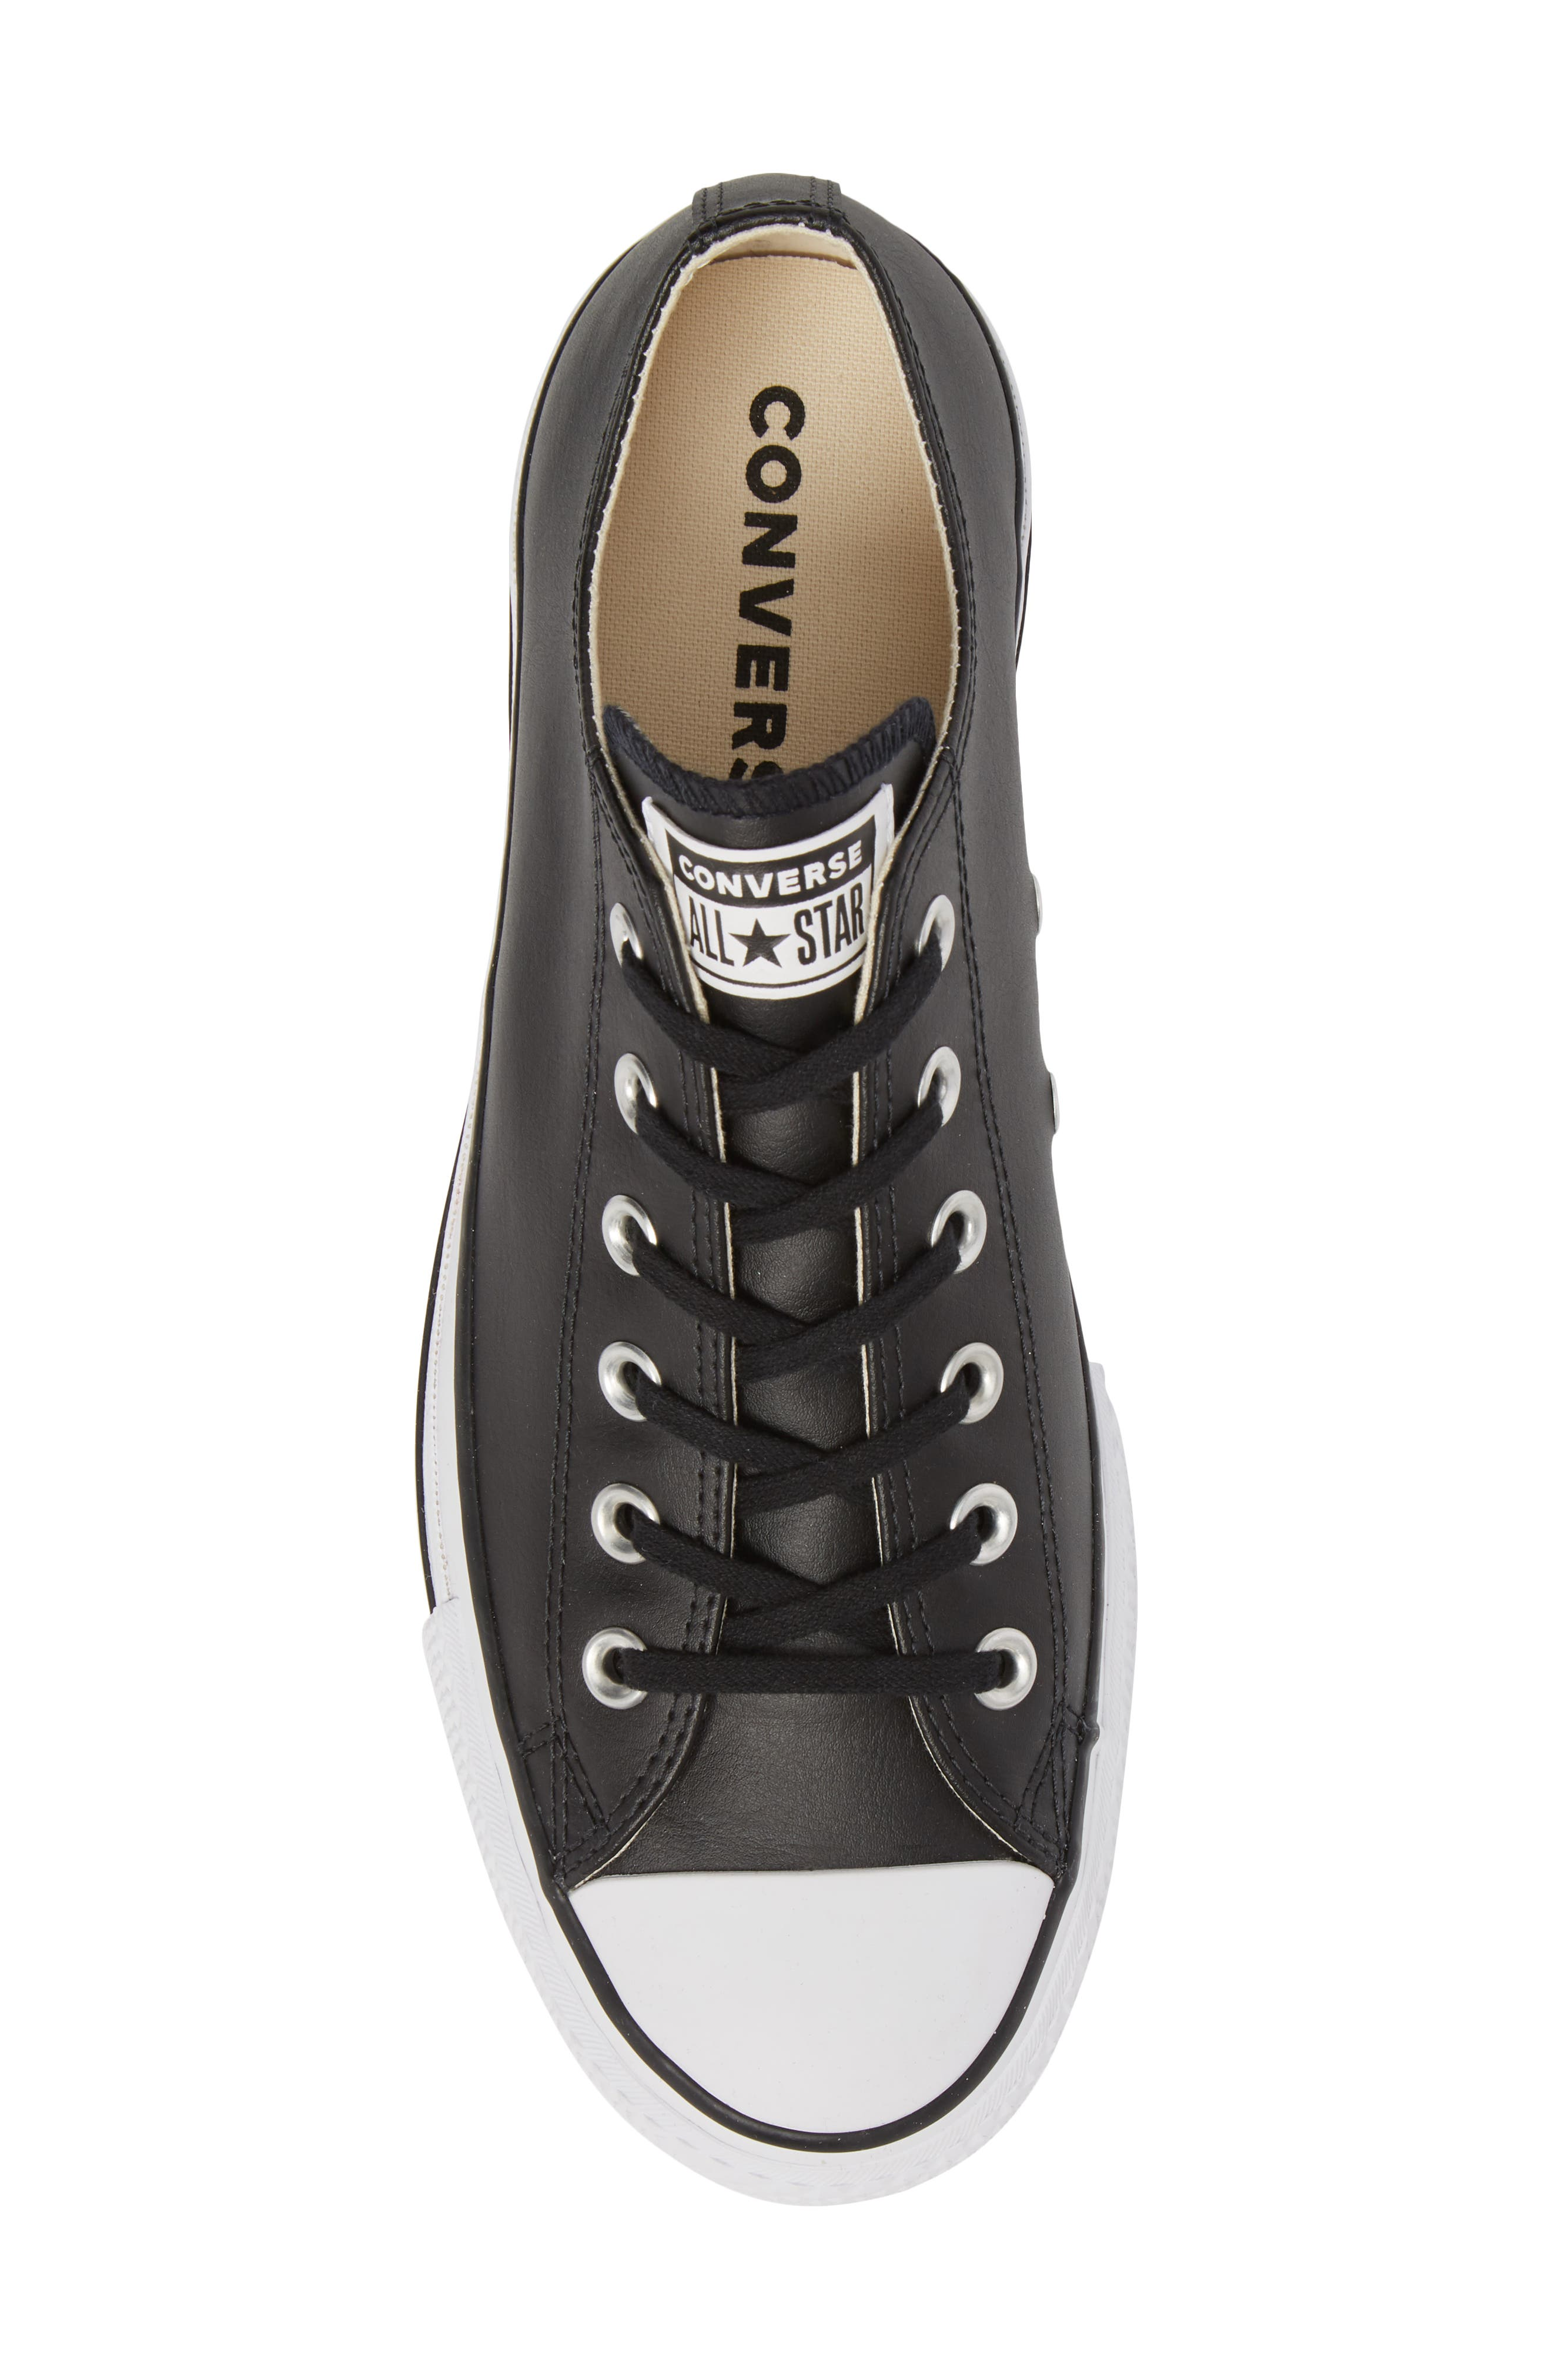 CONVERSE, Chuck Taylor<sup>®</sup> All Star<sup>®</sup> Platform Sneaker, Alternate thumbnail 5, color, BLACK/ BLACK LEATHER